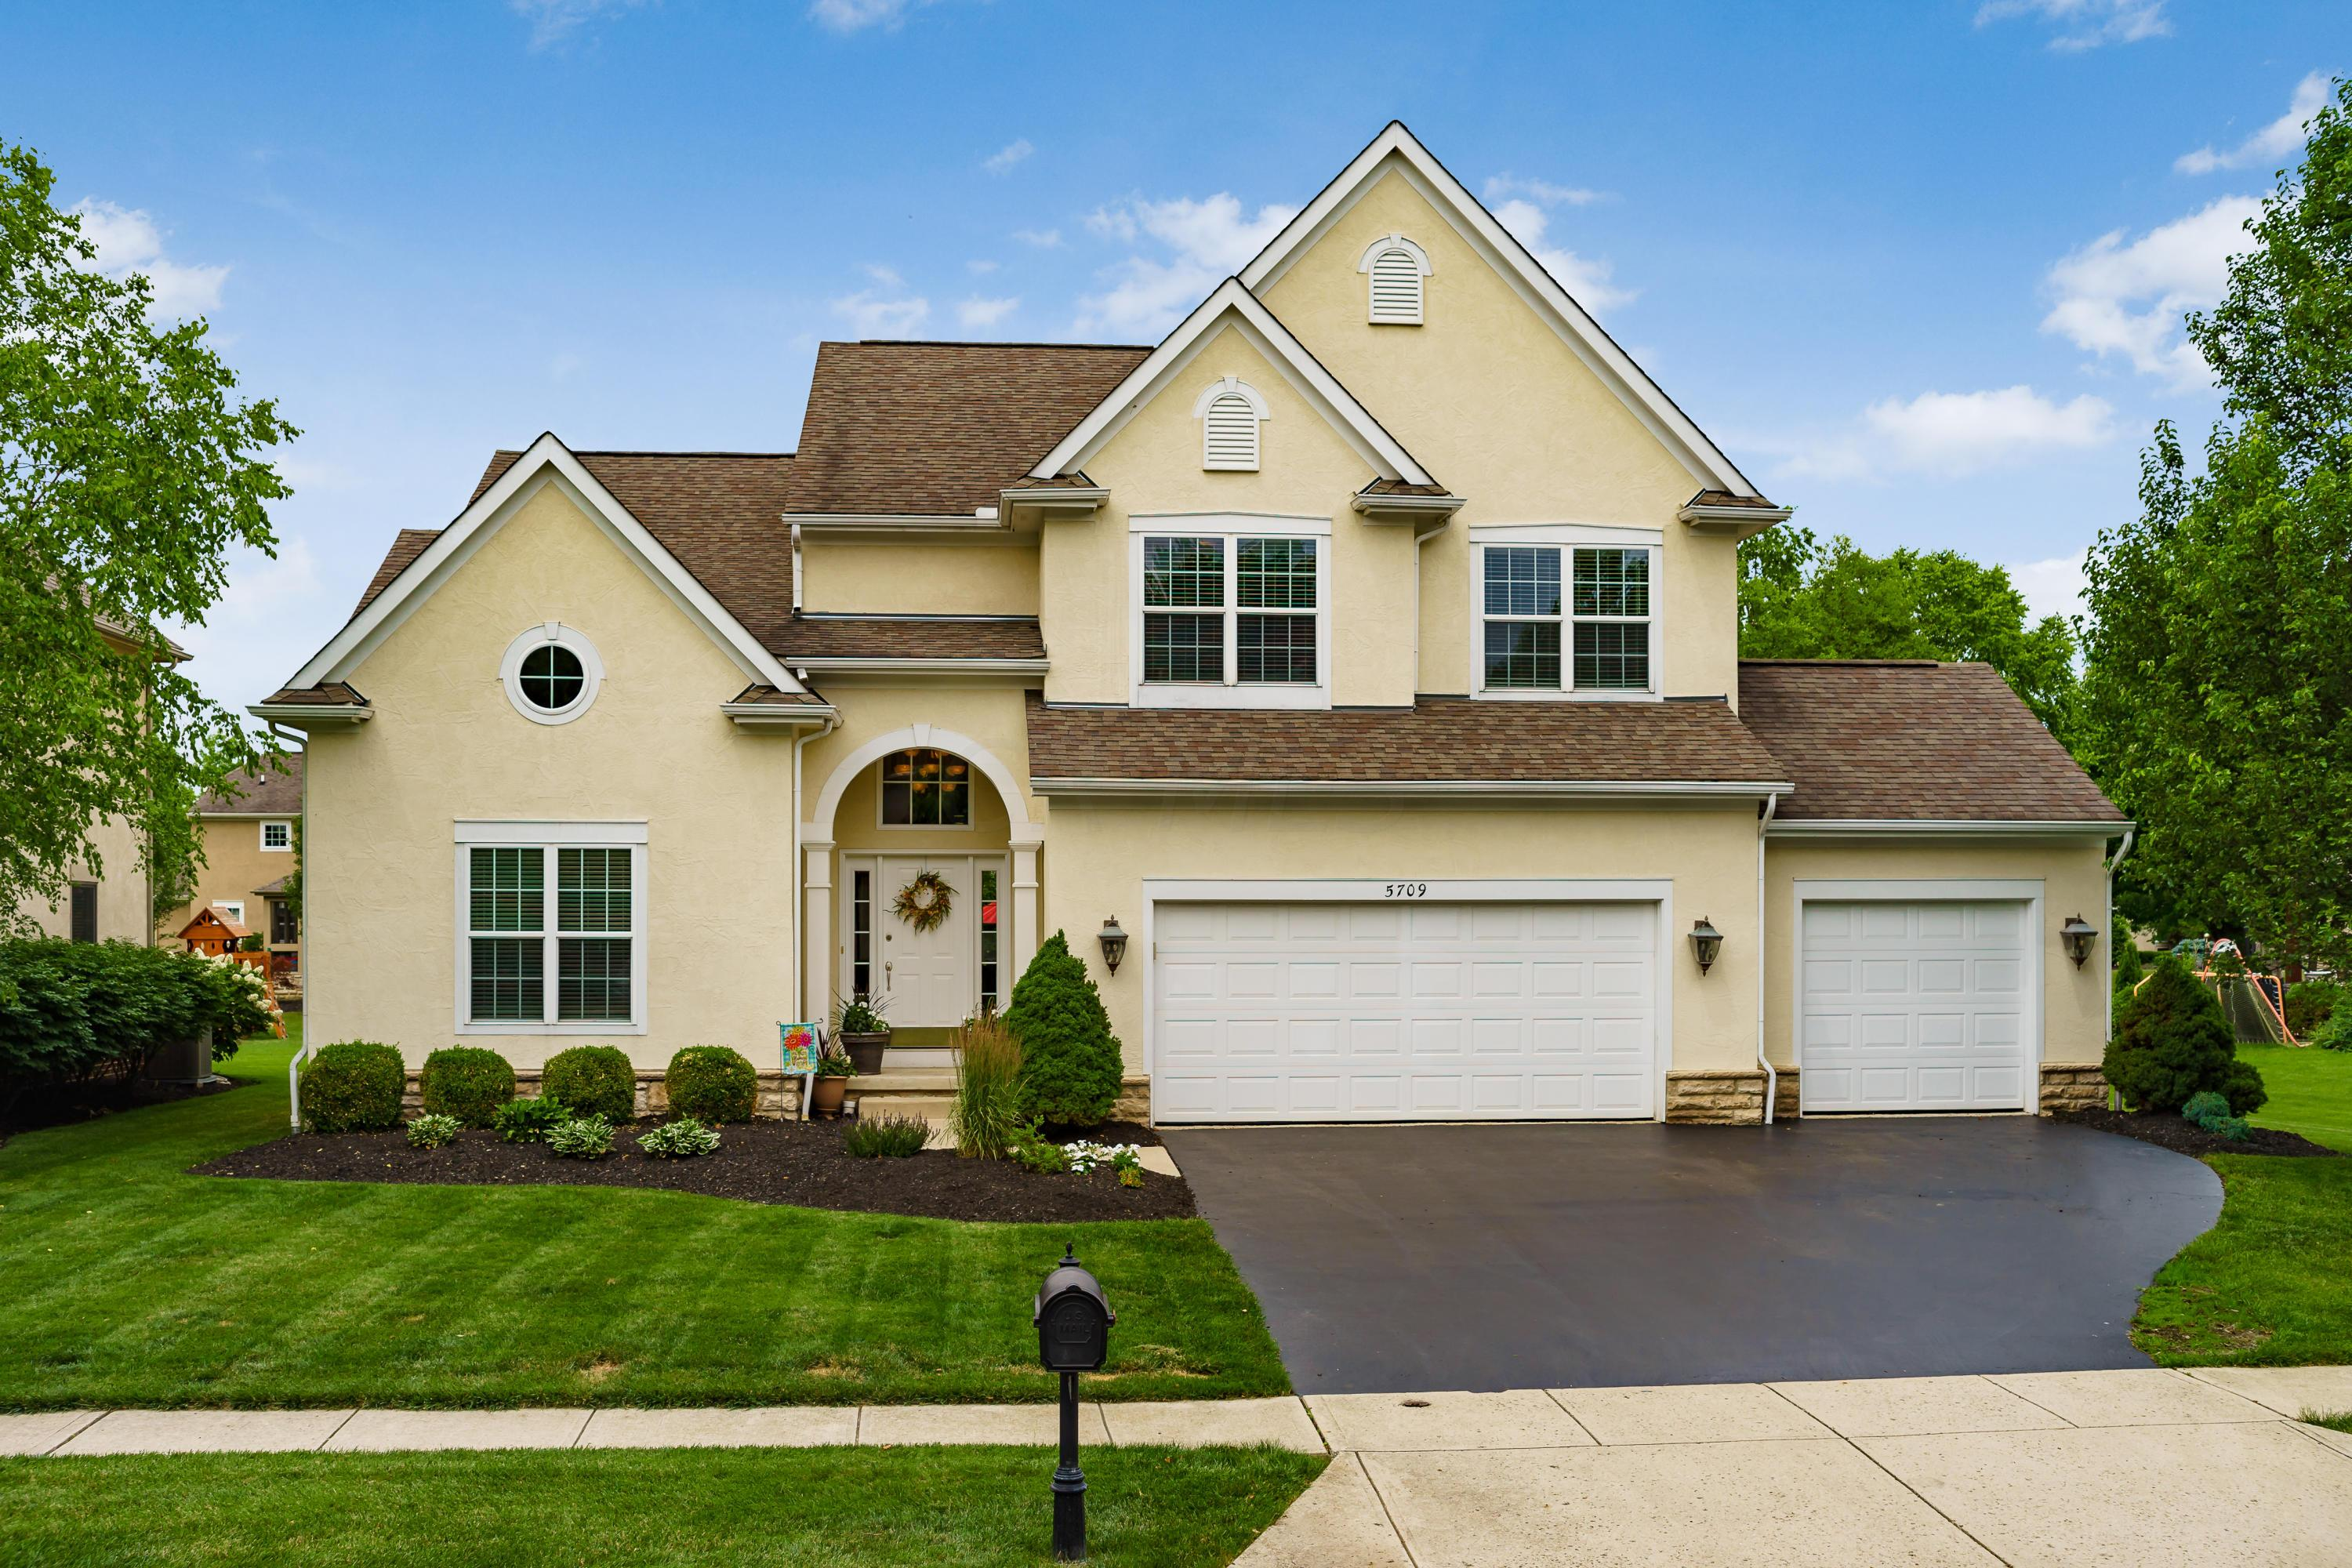 5709 Tynecastle Loop, Dublin, Ohio 43016, 5 Bedrooms Bedrooms, ,4 BathroomsBathrooms,Residential,For Sale,Tynecastle,220020883